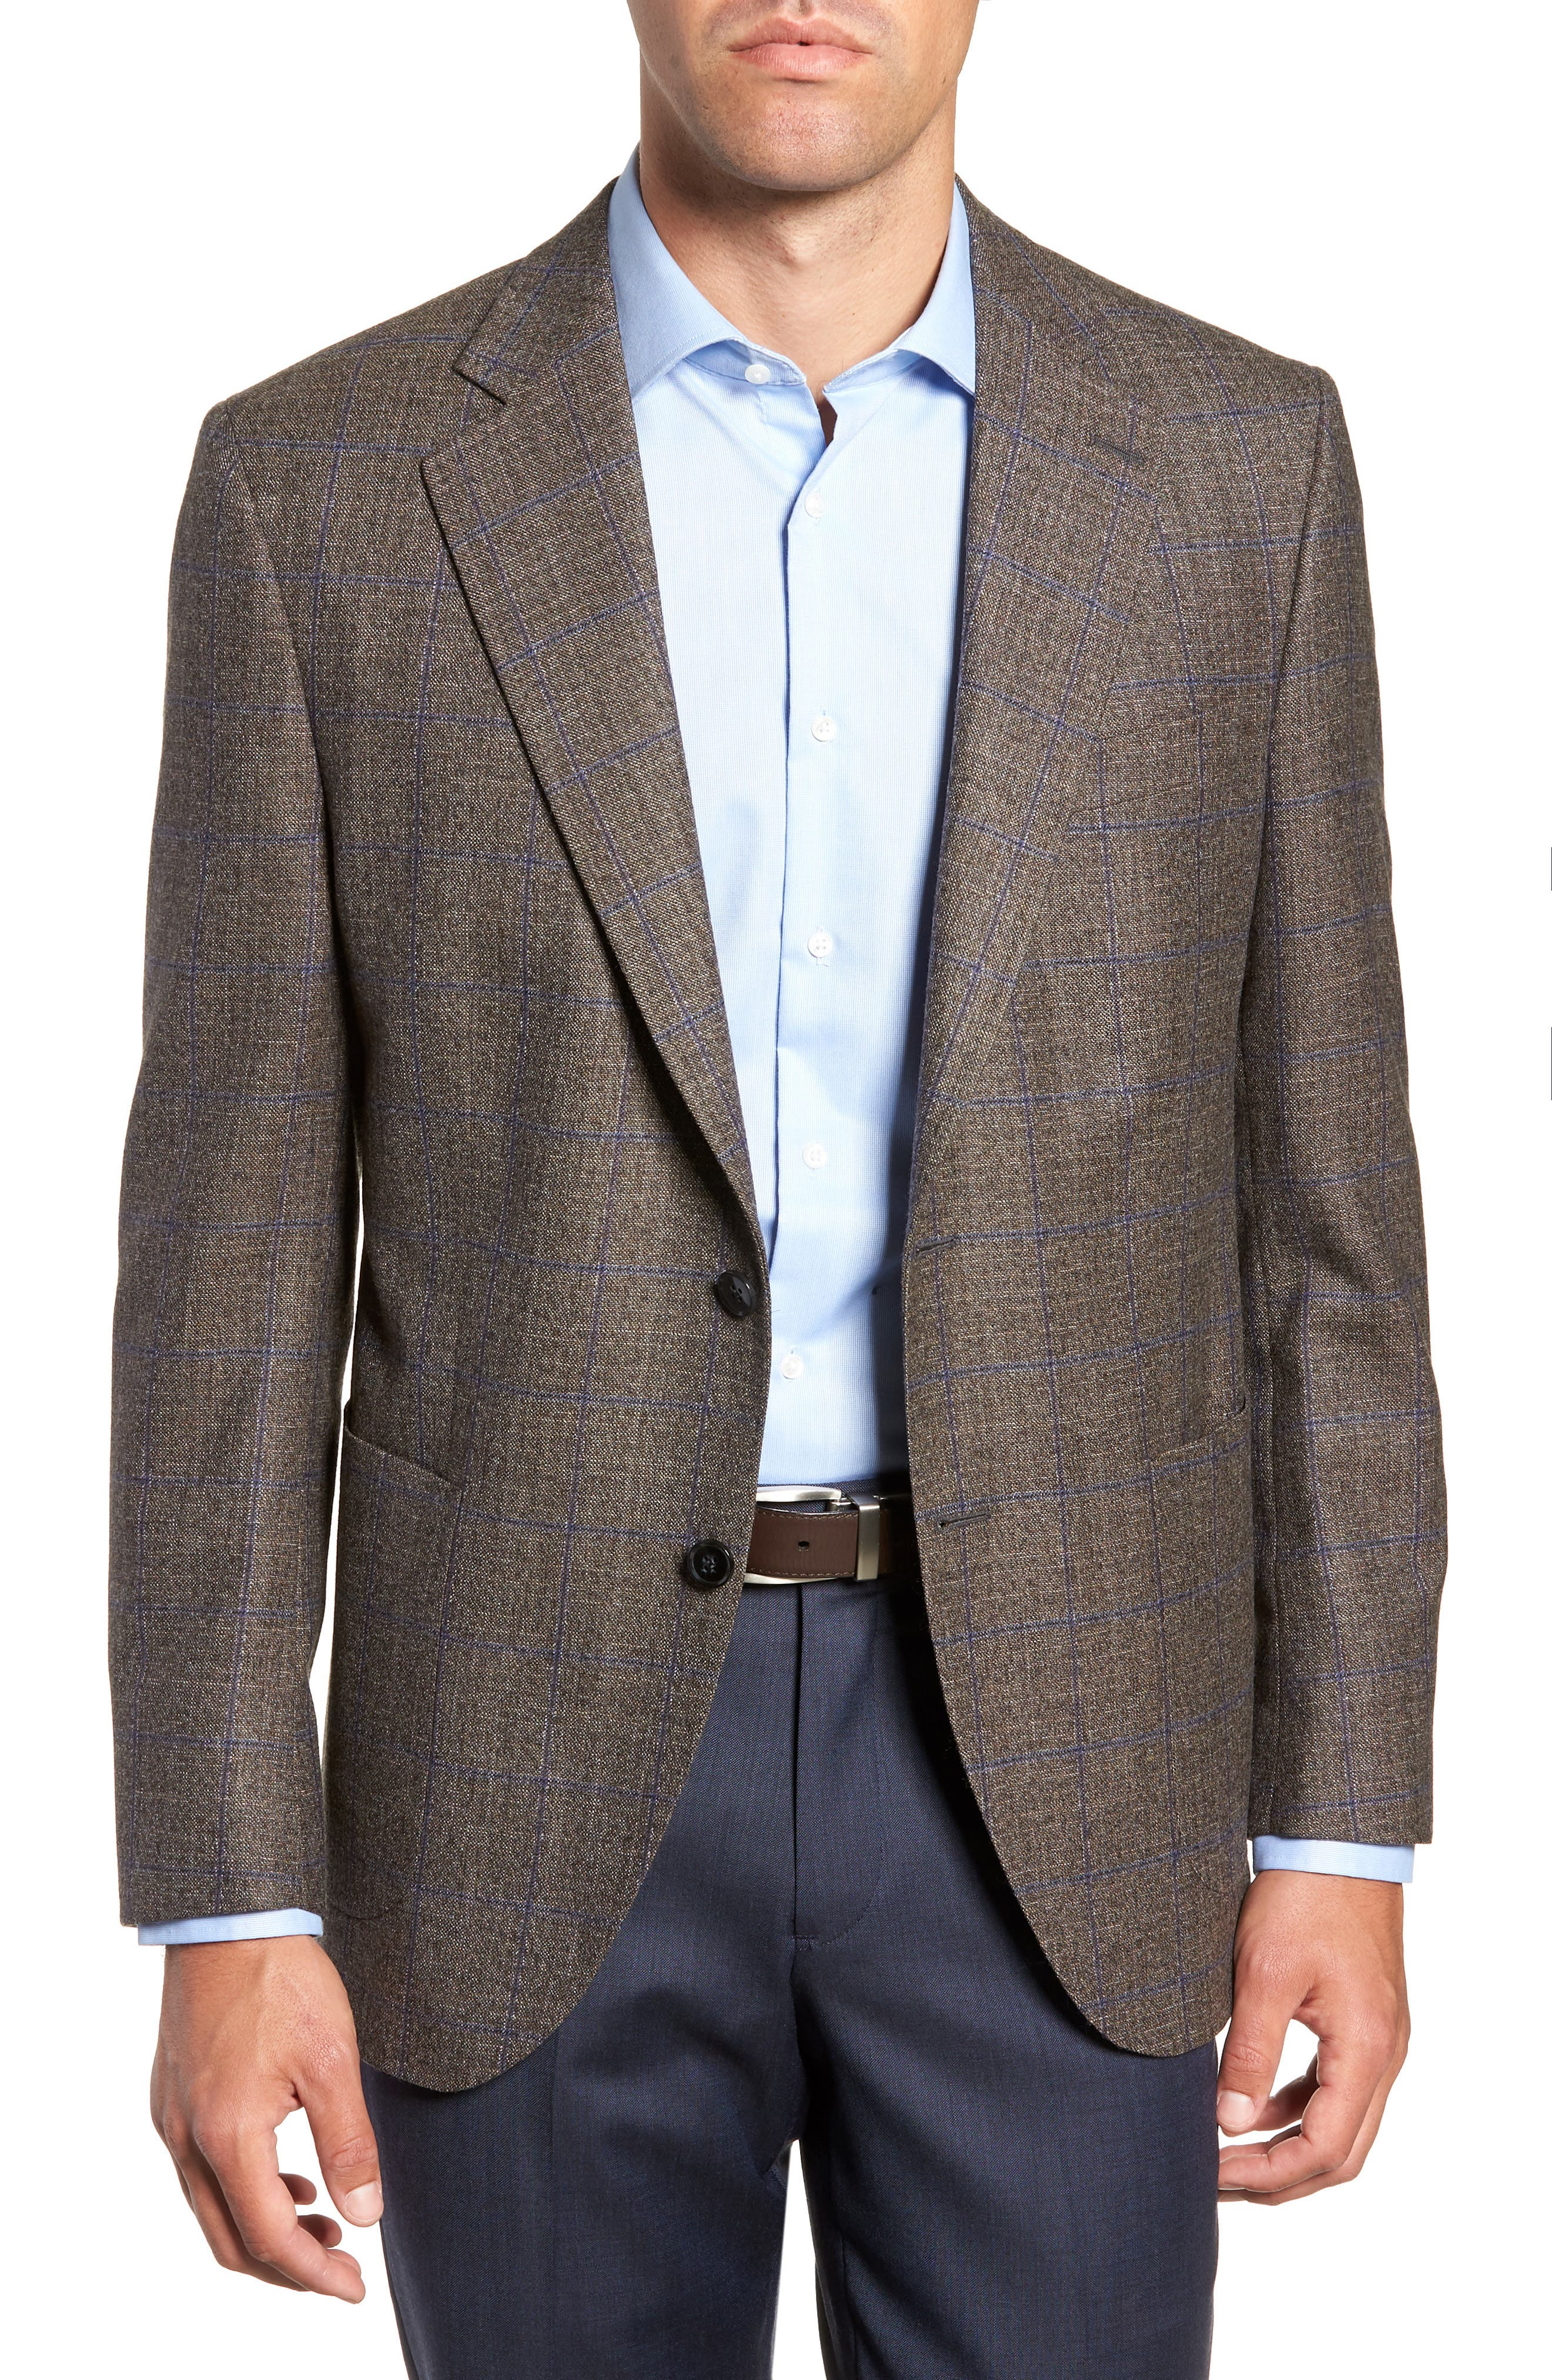 Hyperlight Classic Fit Wool Sport Coat,                             Main thumbnail 1, color,                             BROWN